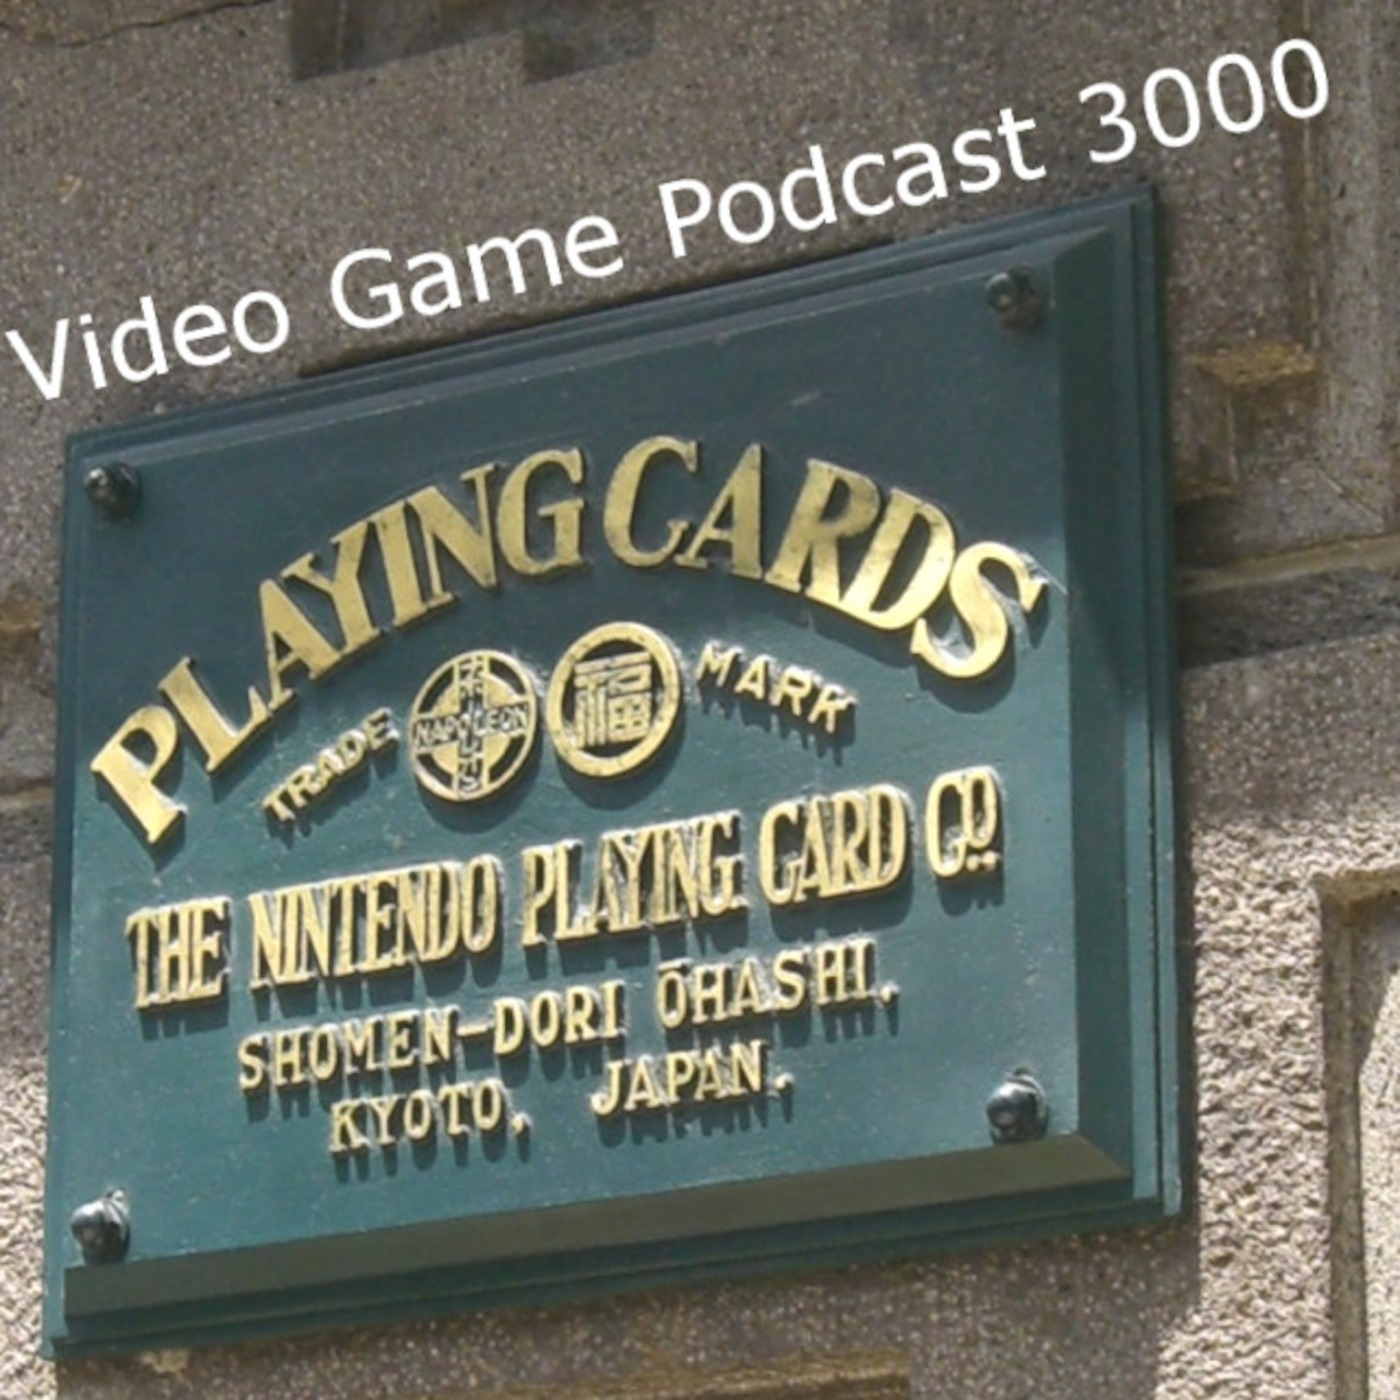 Video Game Podcast 3000